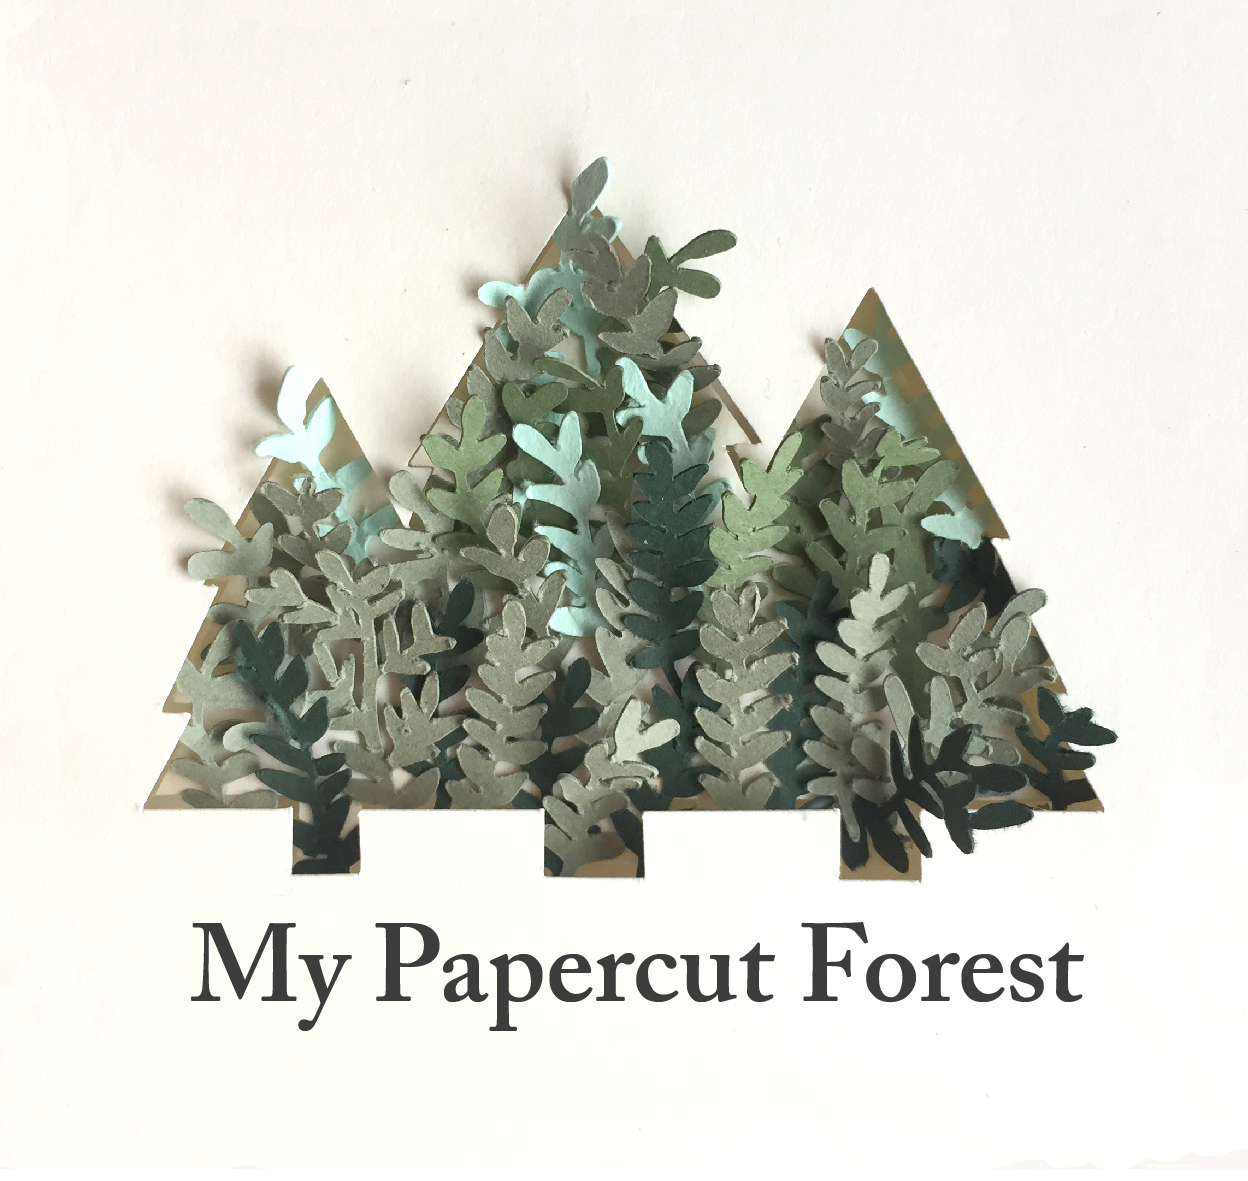 Paper Plant Workshop by Silvina De Vita - My Papercut Forest - crafts in London